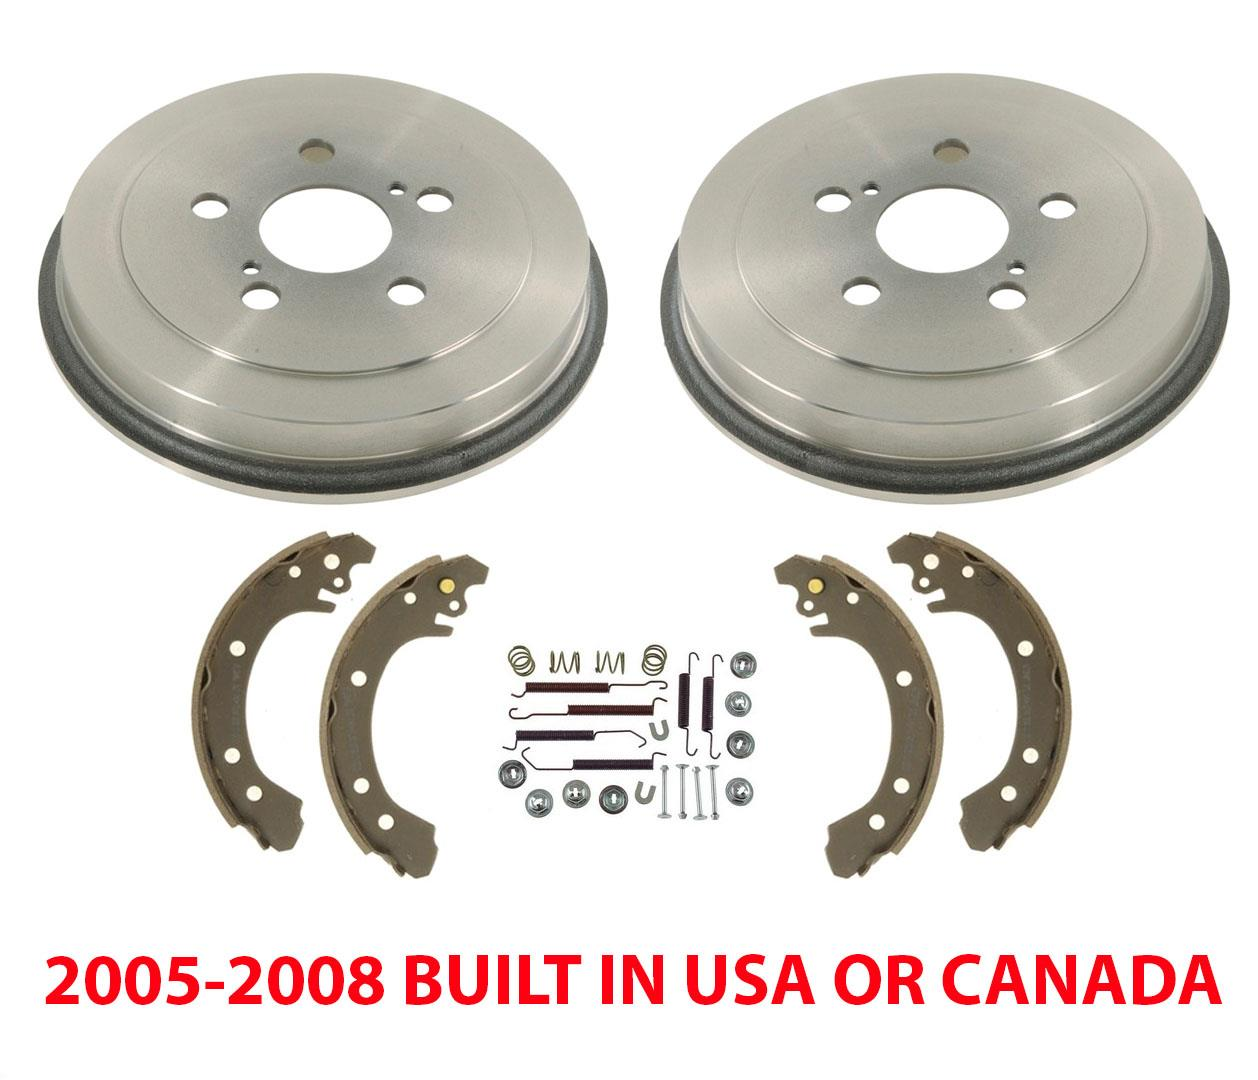 Both Left and Right 2012 For Toyota Corolla Rear Drum Brake Shoes Set Stirling with 2 Years Manufacturer Warranty